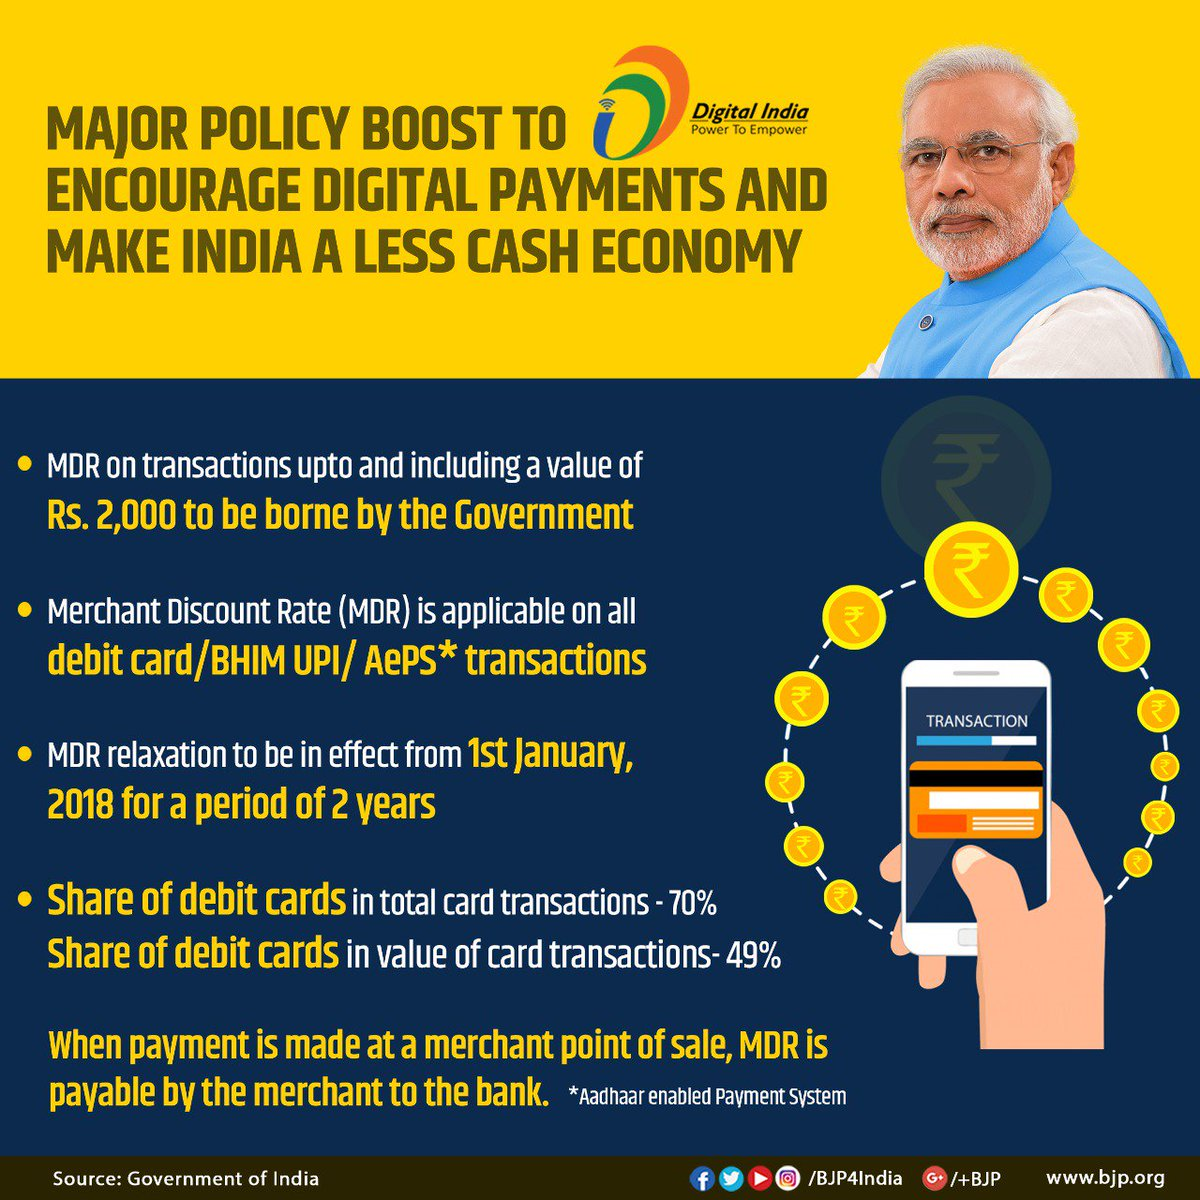 Major policy boost to encourage digital payments and make India a less cash economy. Government will bear merchant charge on debit card purchases up to Rs 2,000.